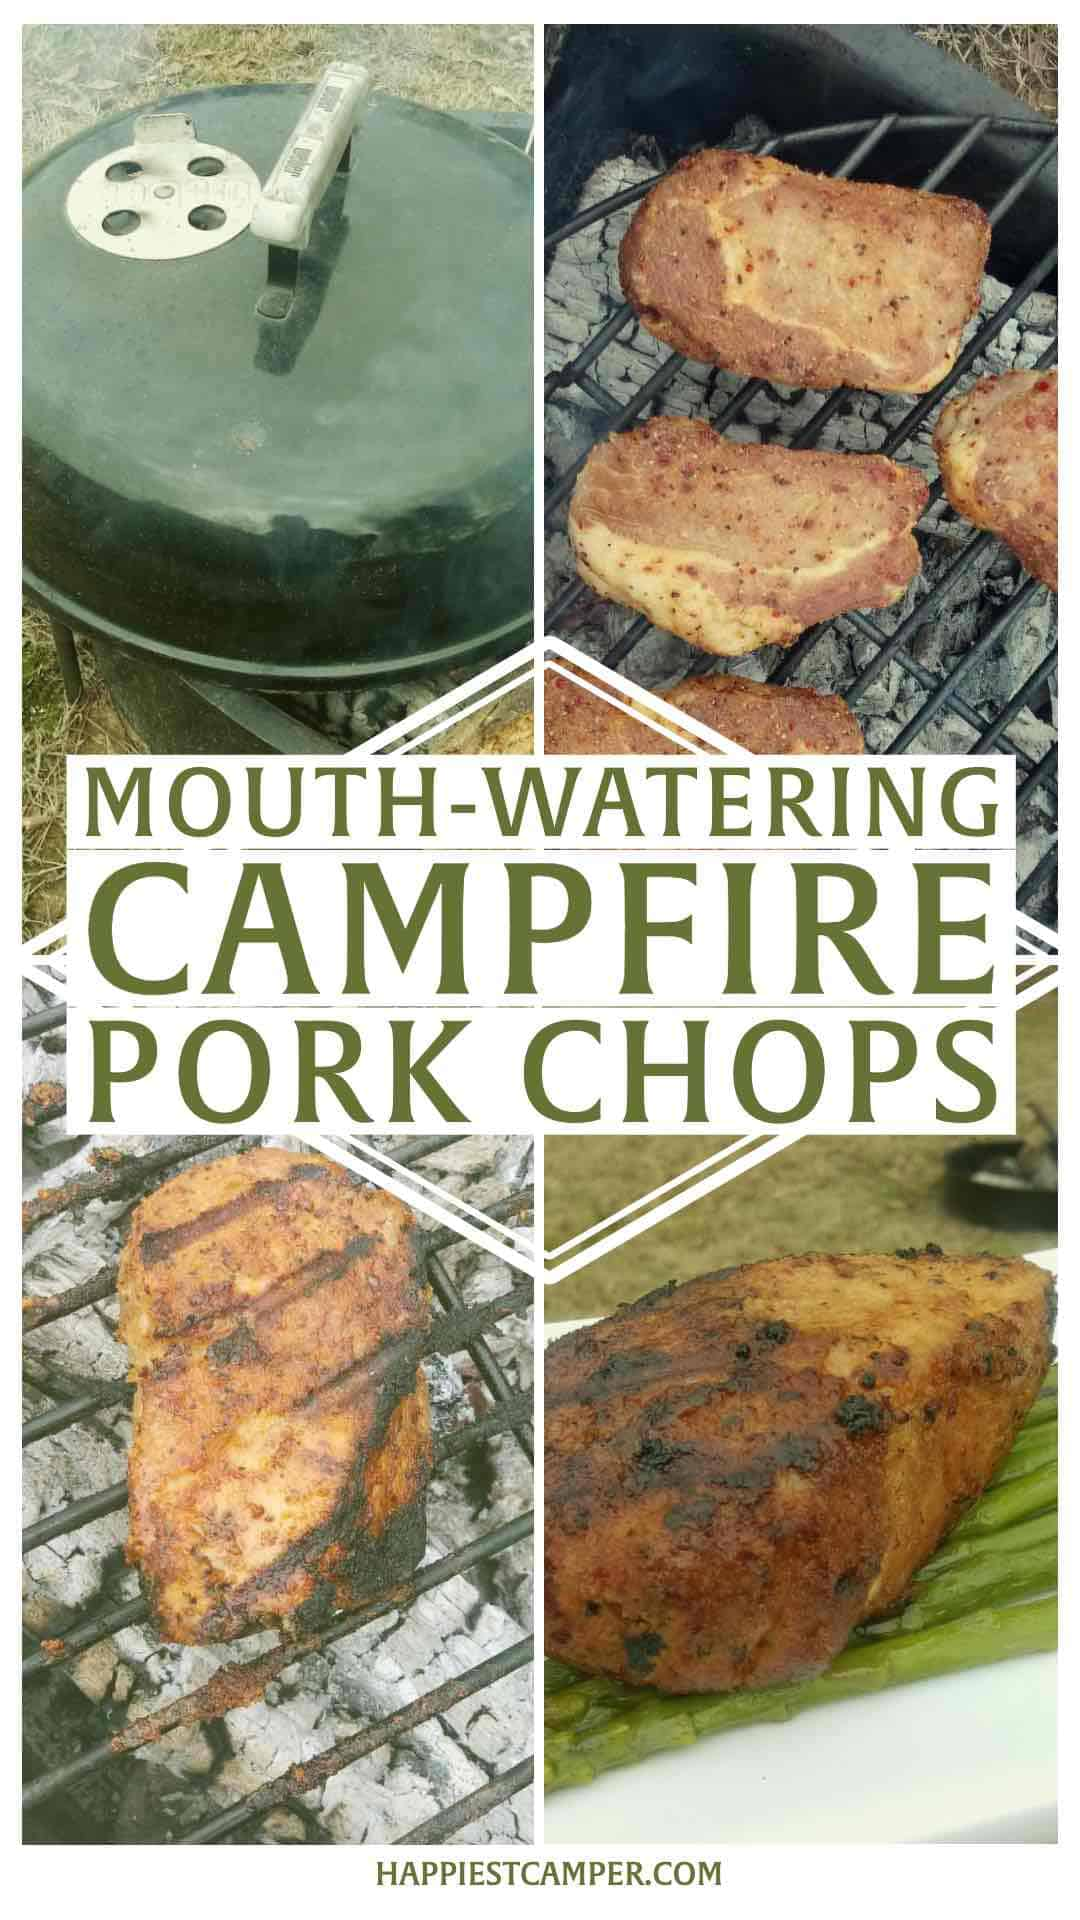 Mouth Watering Campfire Pork Chops